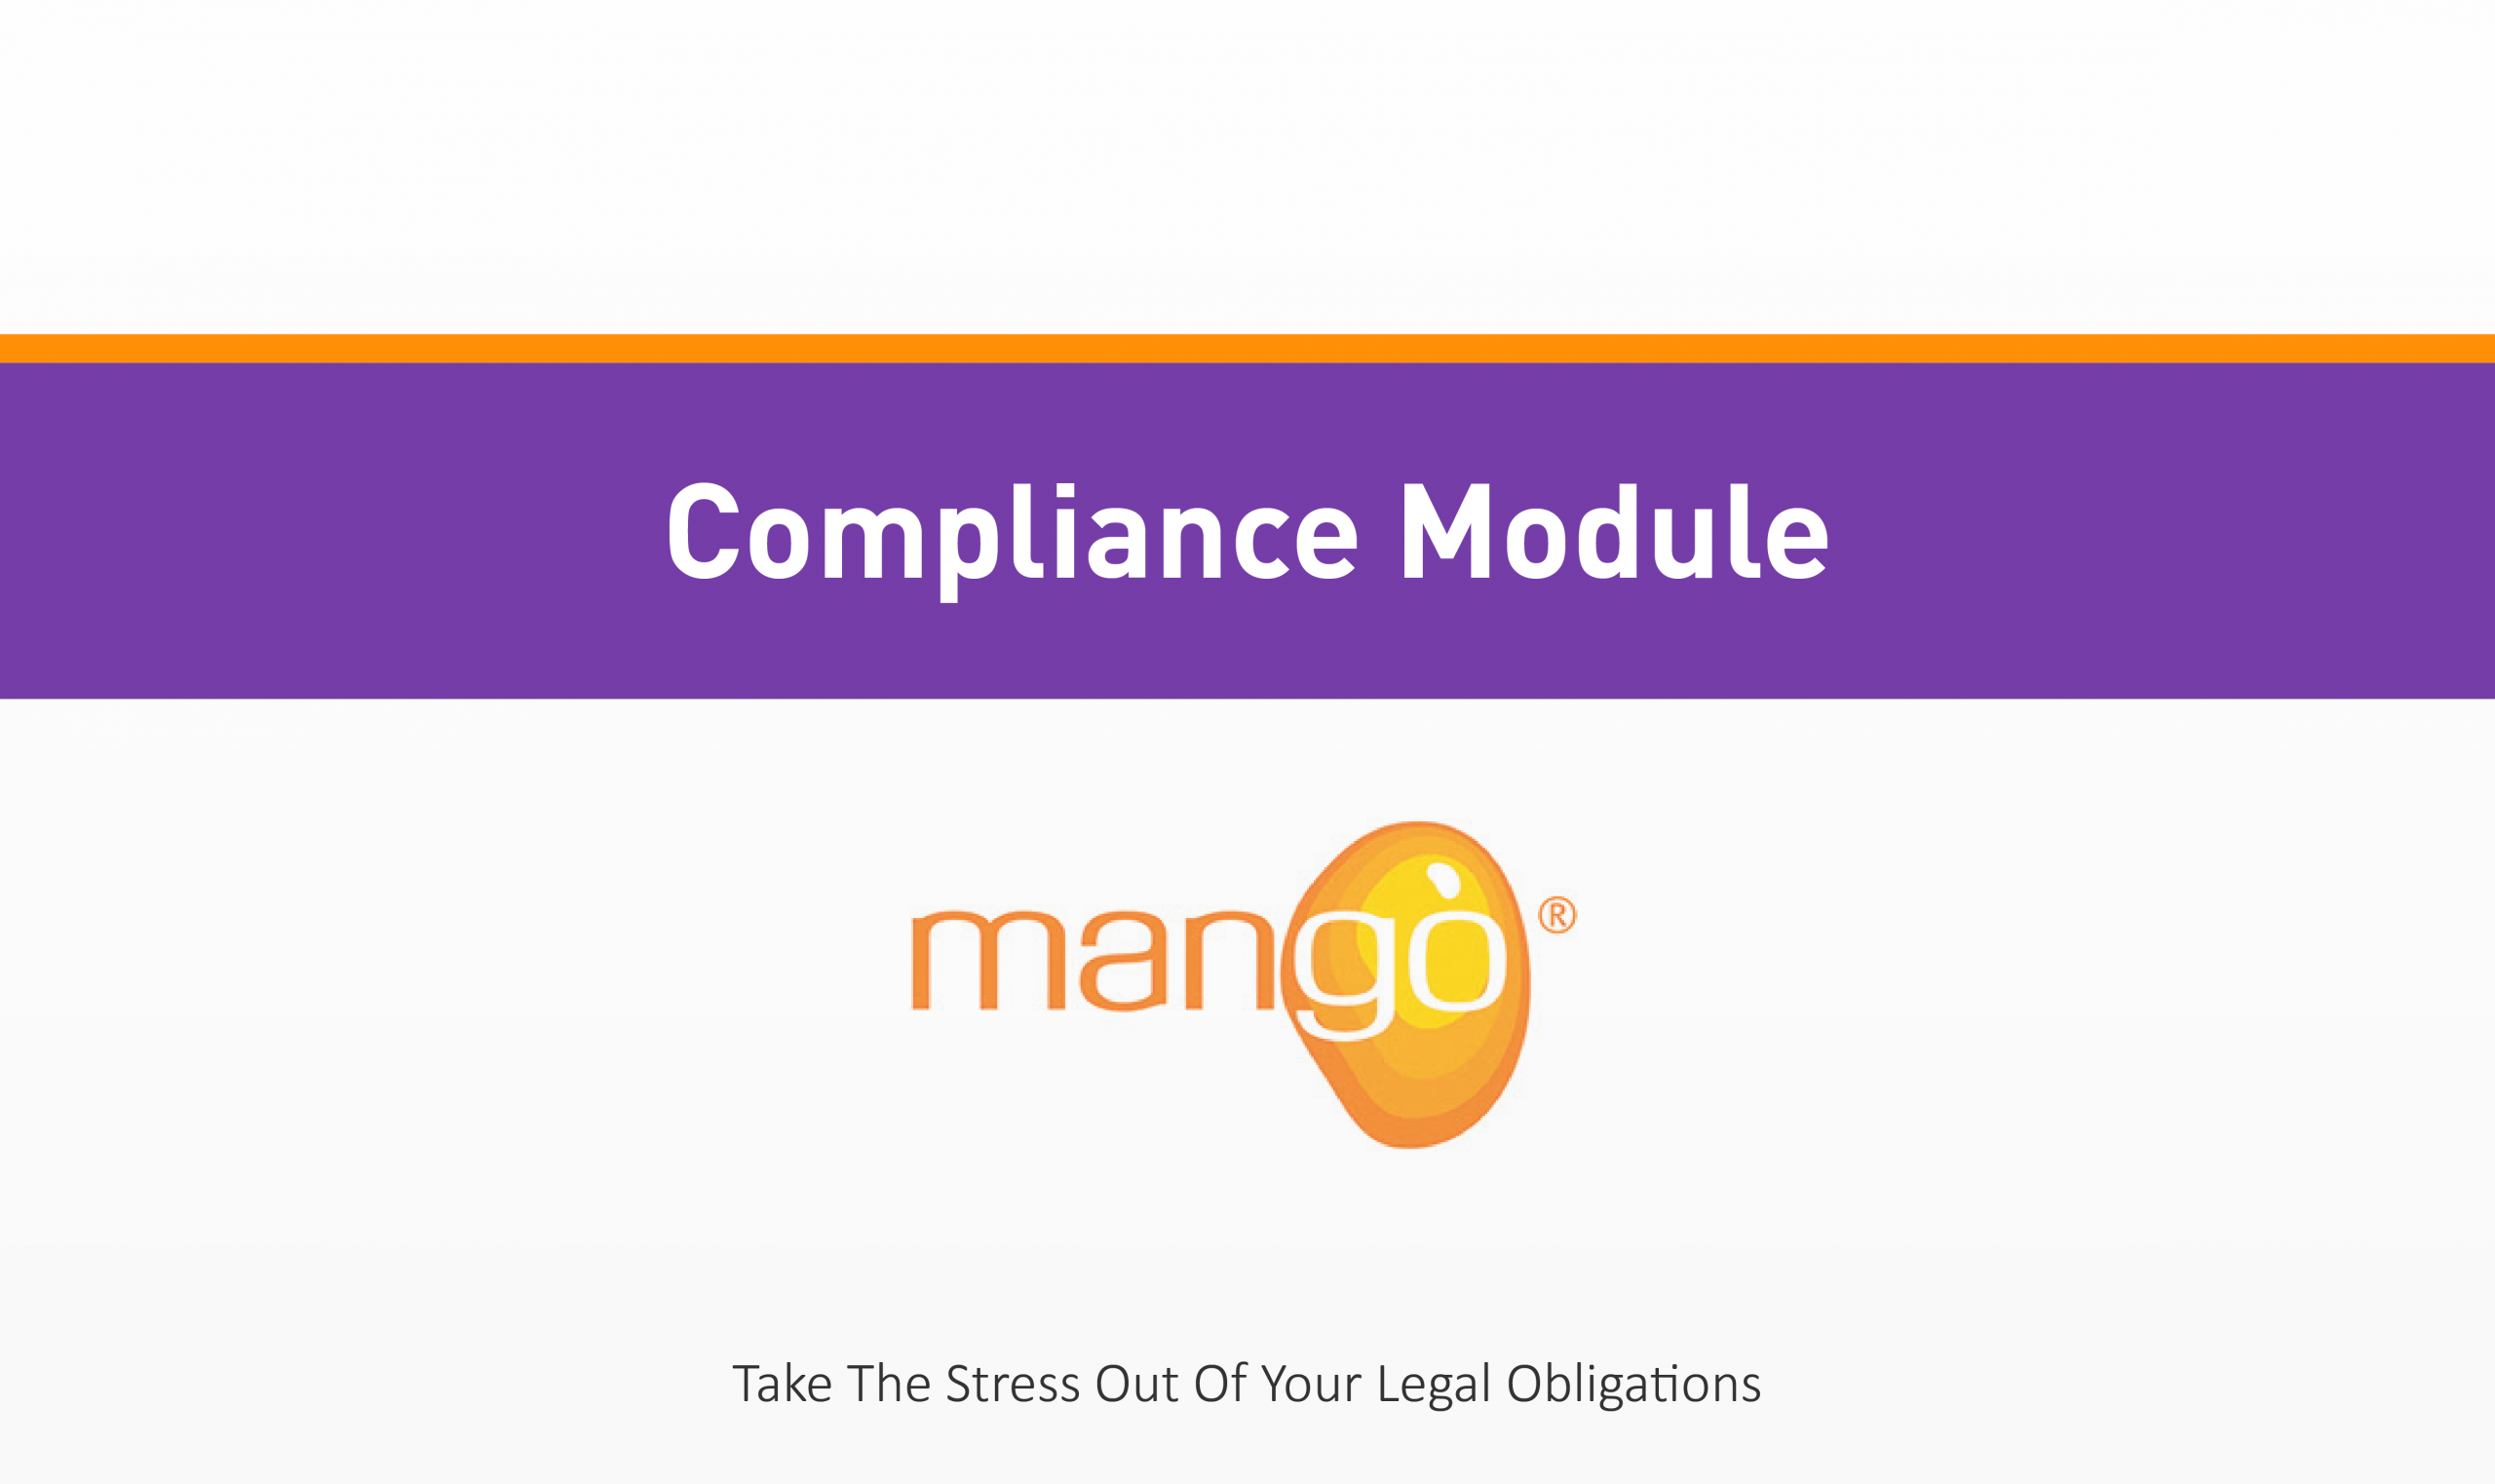 Compliance Module Training Quality Health Safety Environment Management Compliance Services Australia QHSE Consulting And Auditing Mango Compliance Software Solutions